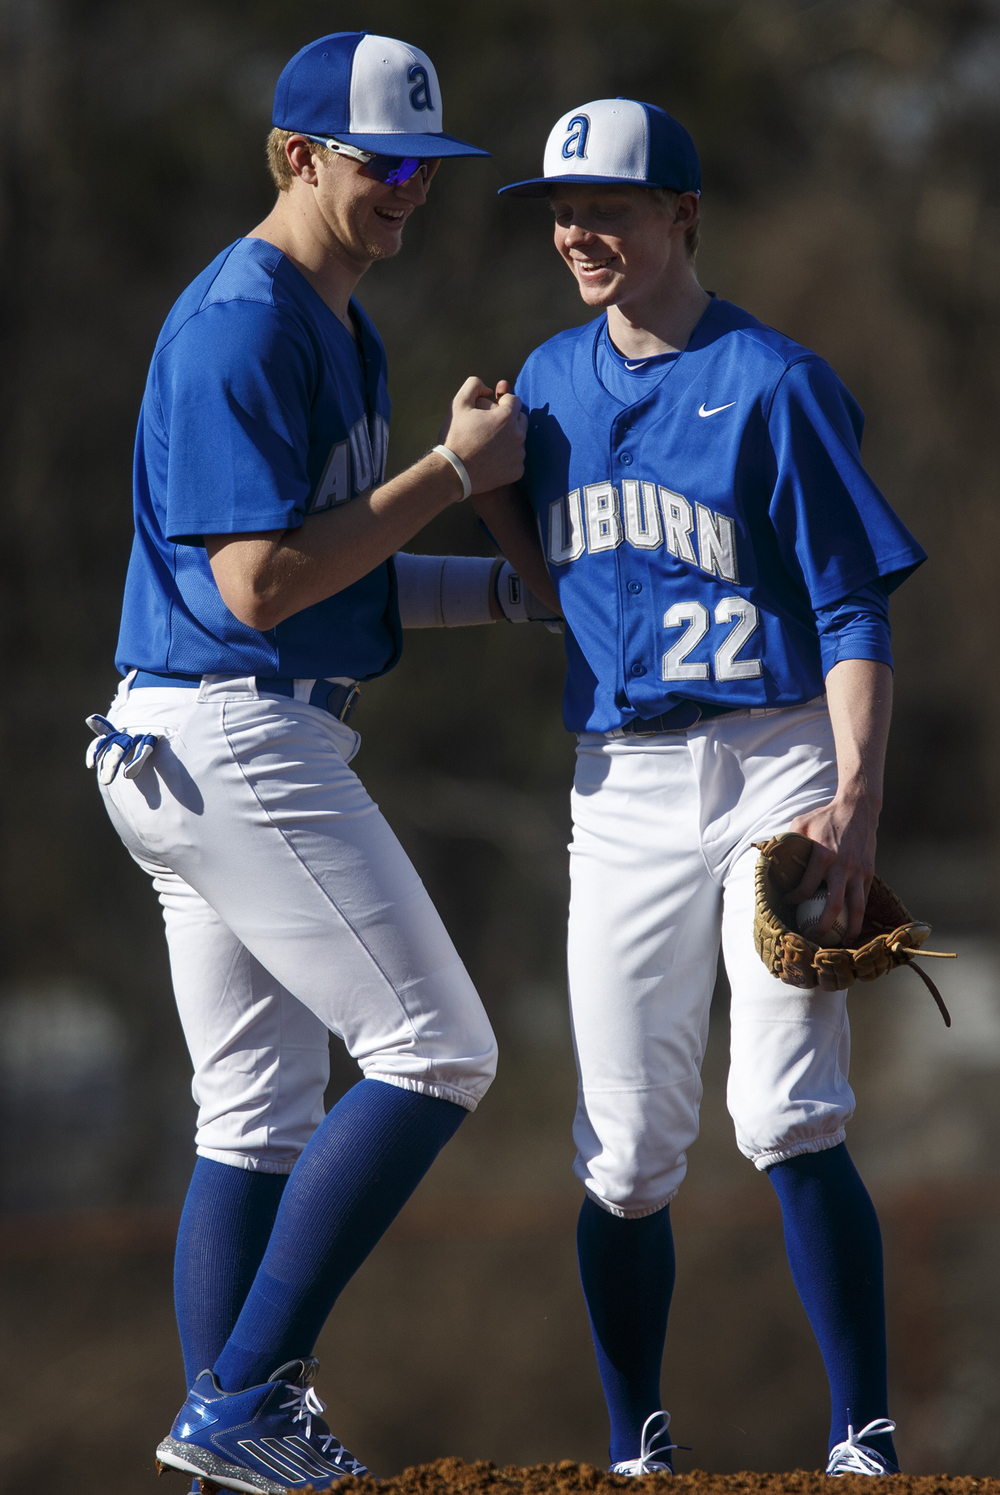 Auburn's Cooper Eaker encourages pitcher Tristan Weaver as he prepares to open the season against Lanphier at Lincoln Land Community College Monday, March 16, 2015. Ted Schurter/The State Journal-Register